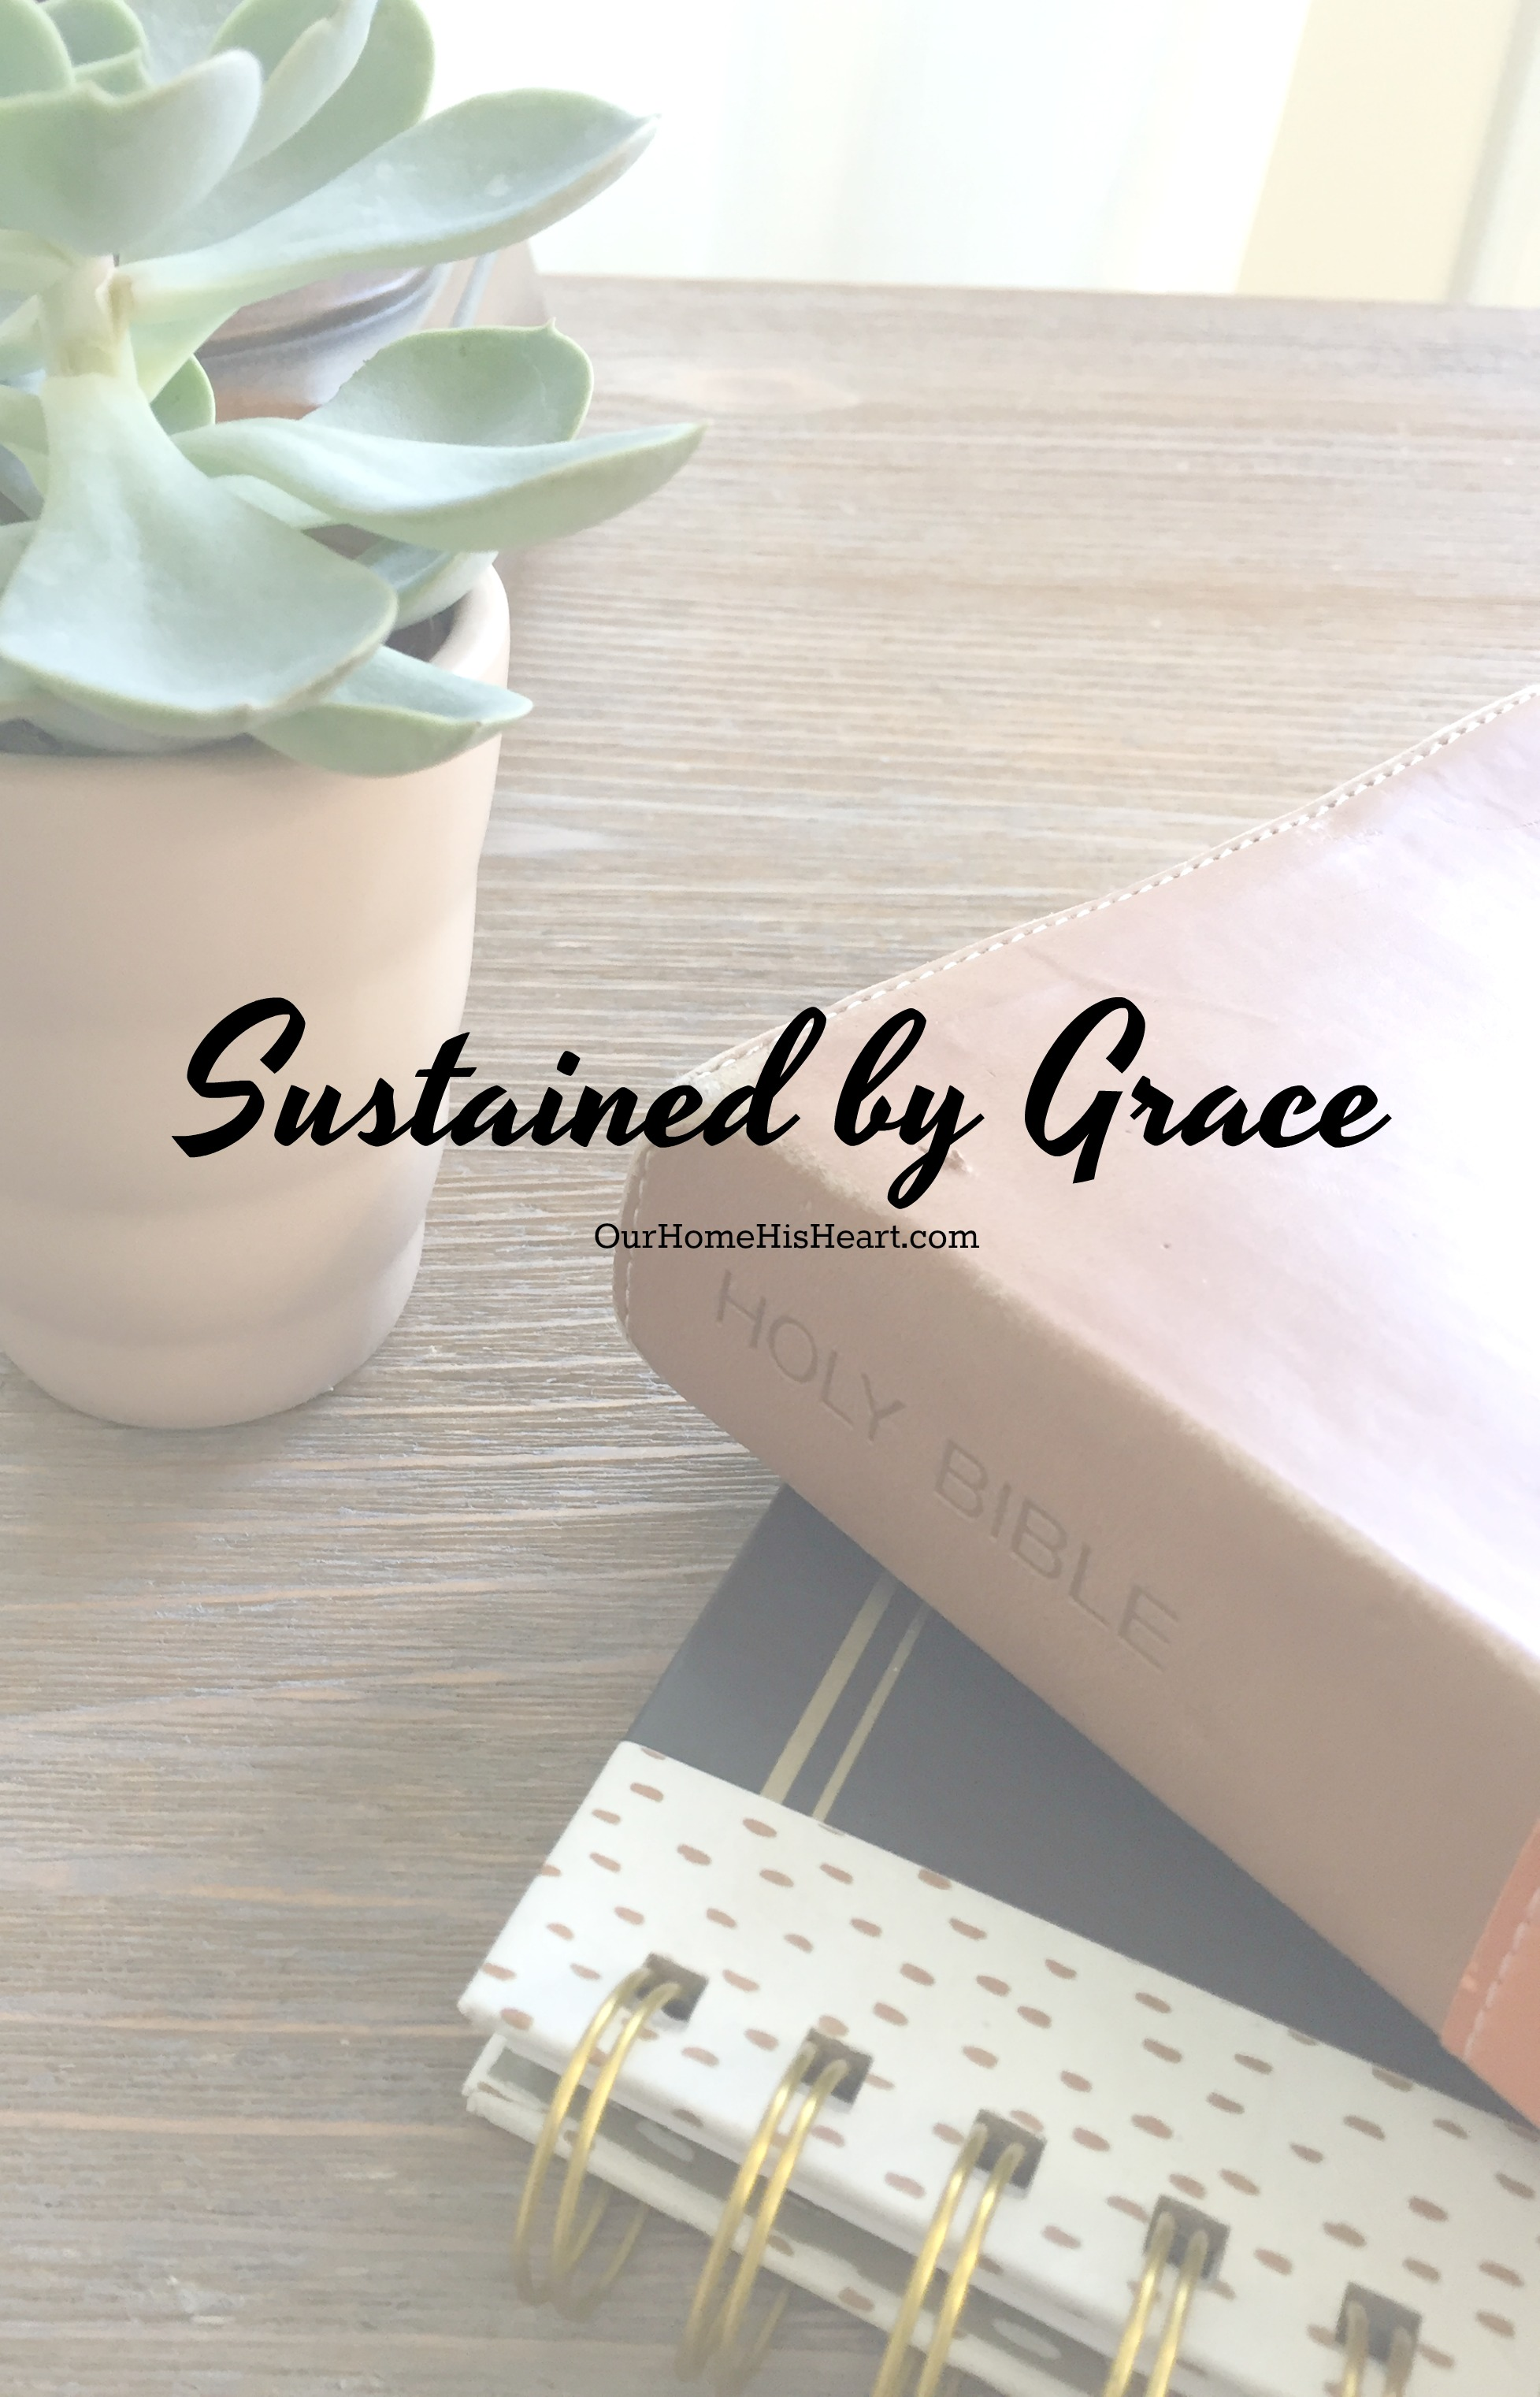 Sustained by God's Grace